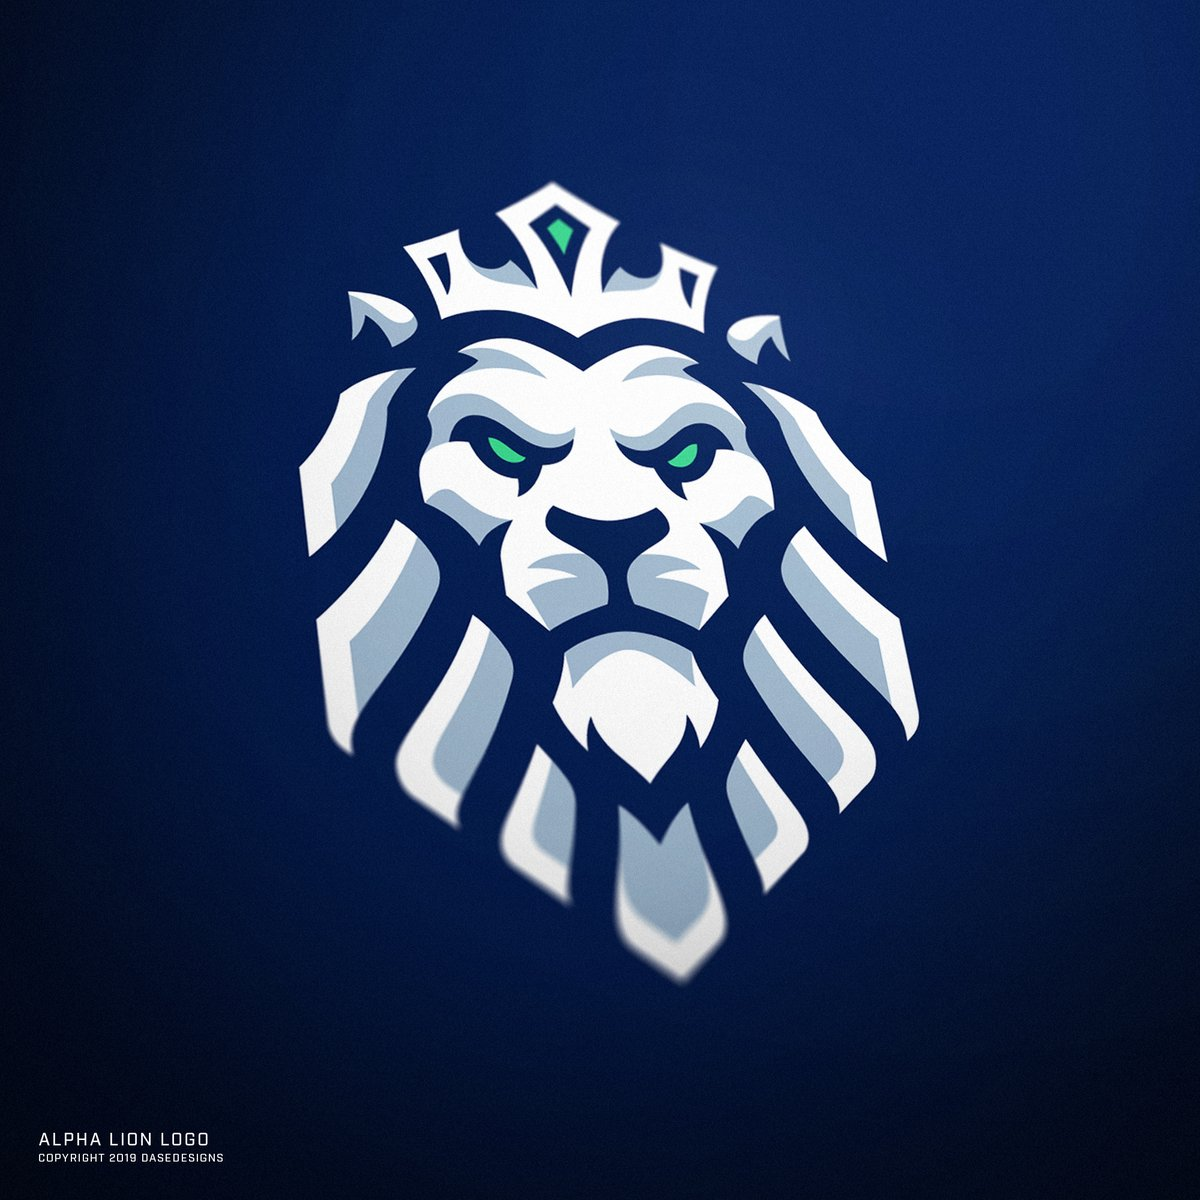 Derrick On Twitter Alpha Lion Logo Made For A Trading Company Blue Minus The Outline Was The Original We Winded Up Settling On Black Instead Which Is Y Alls Favorite Https T Co 6aavq1rlzl Animals vector design concept, outline style. derrick on twitter alpha lion logo